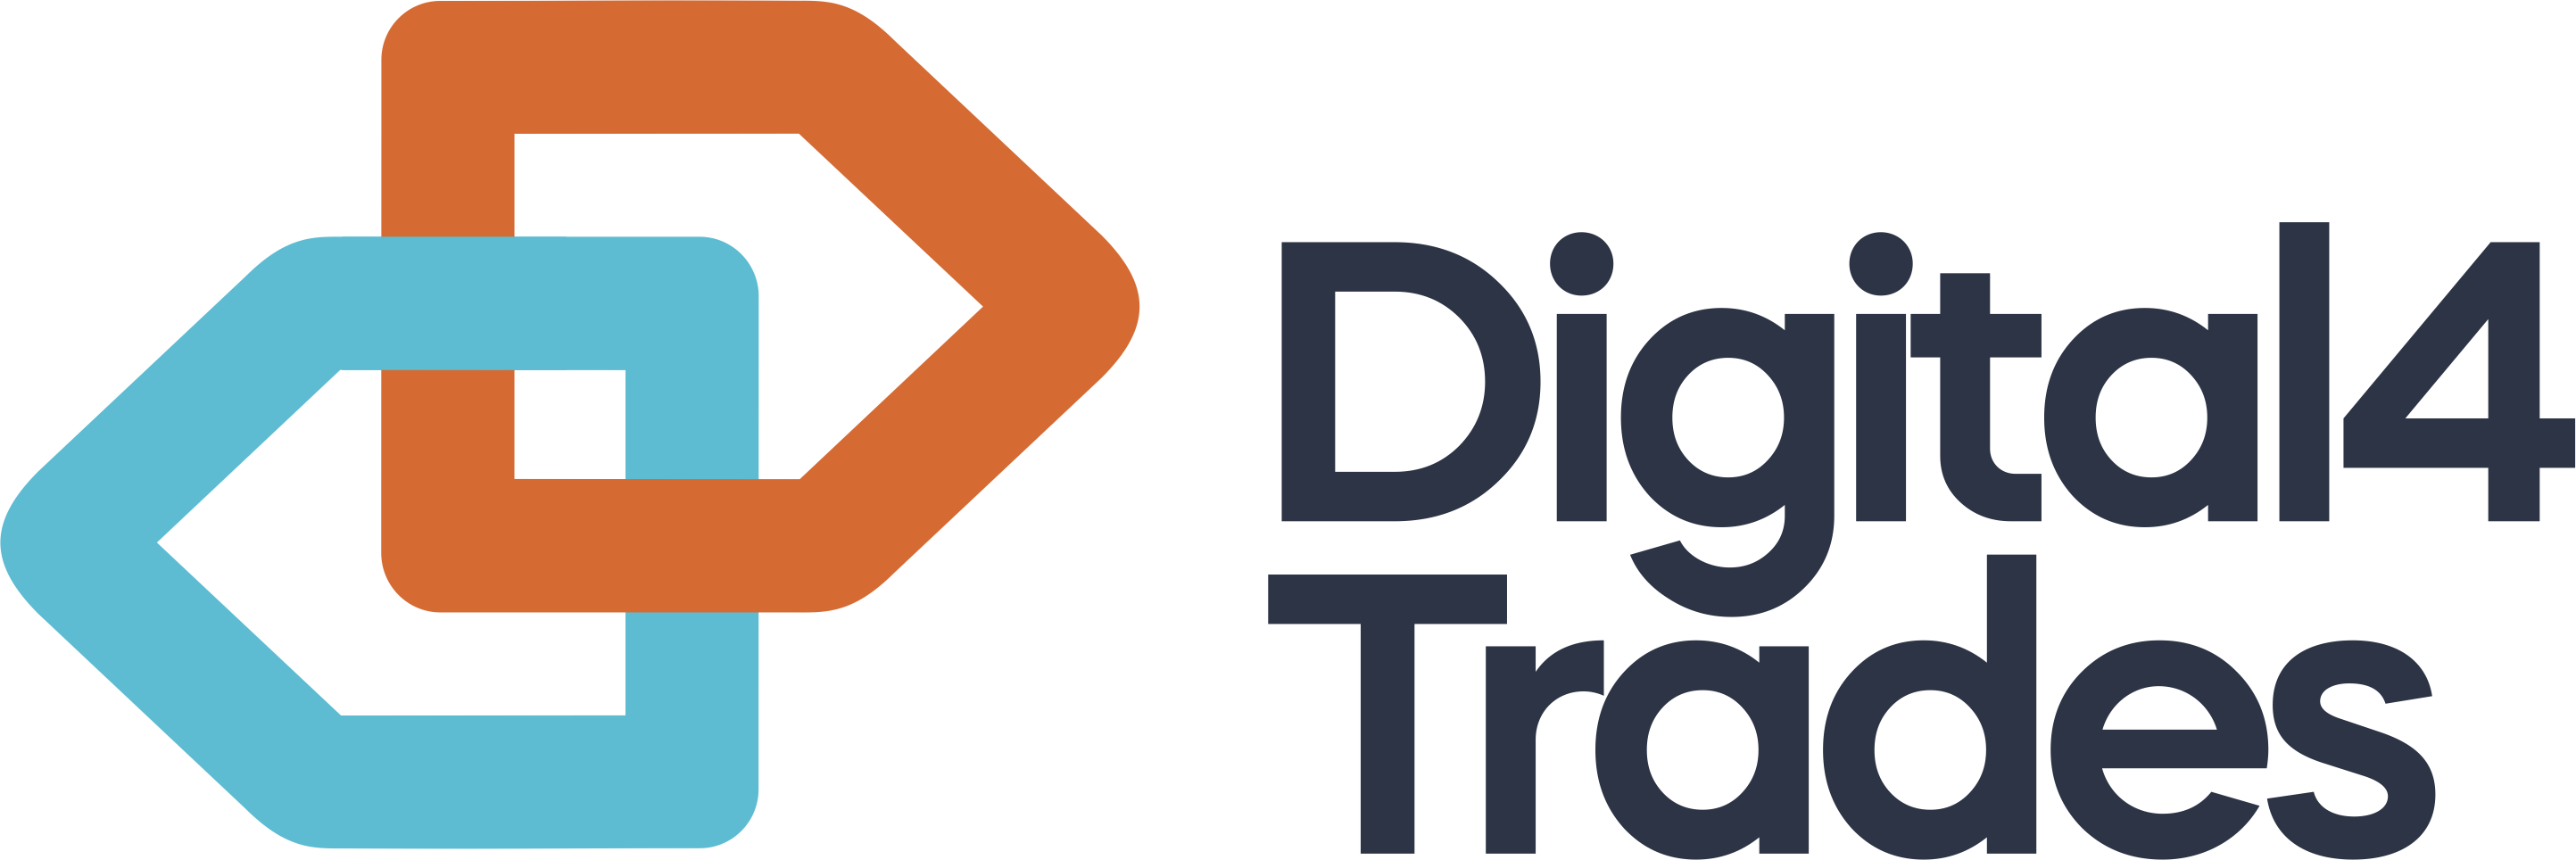 Digital Marketing For Trades